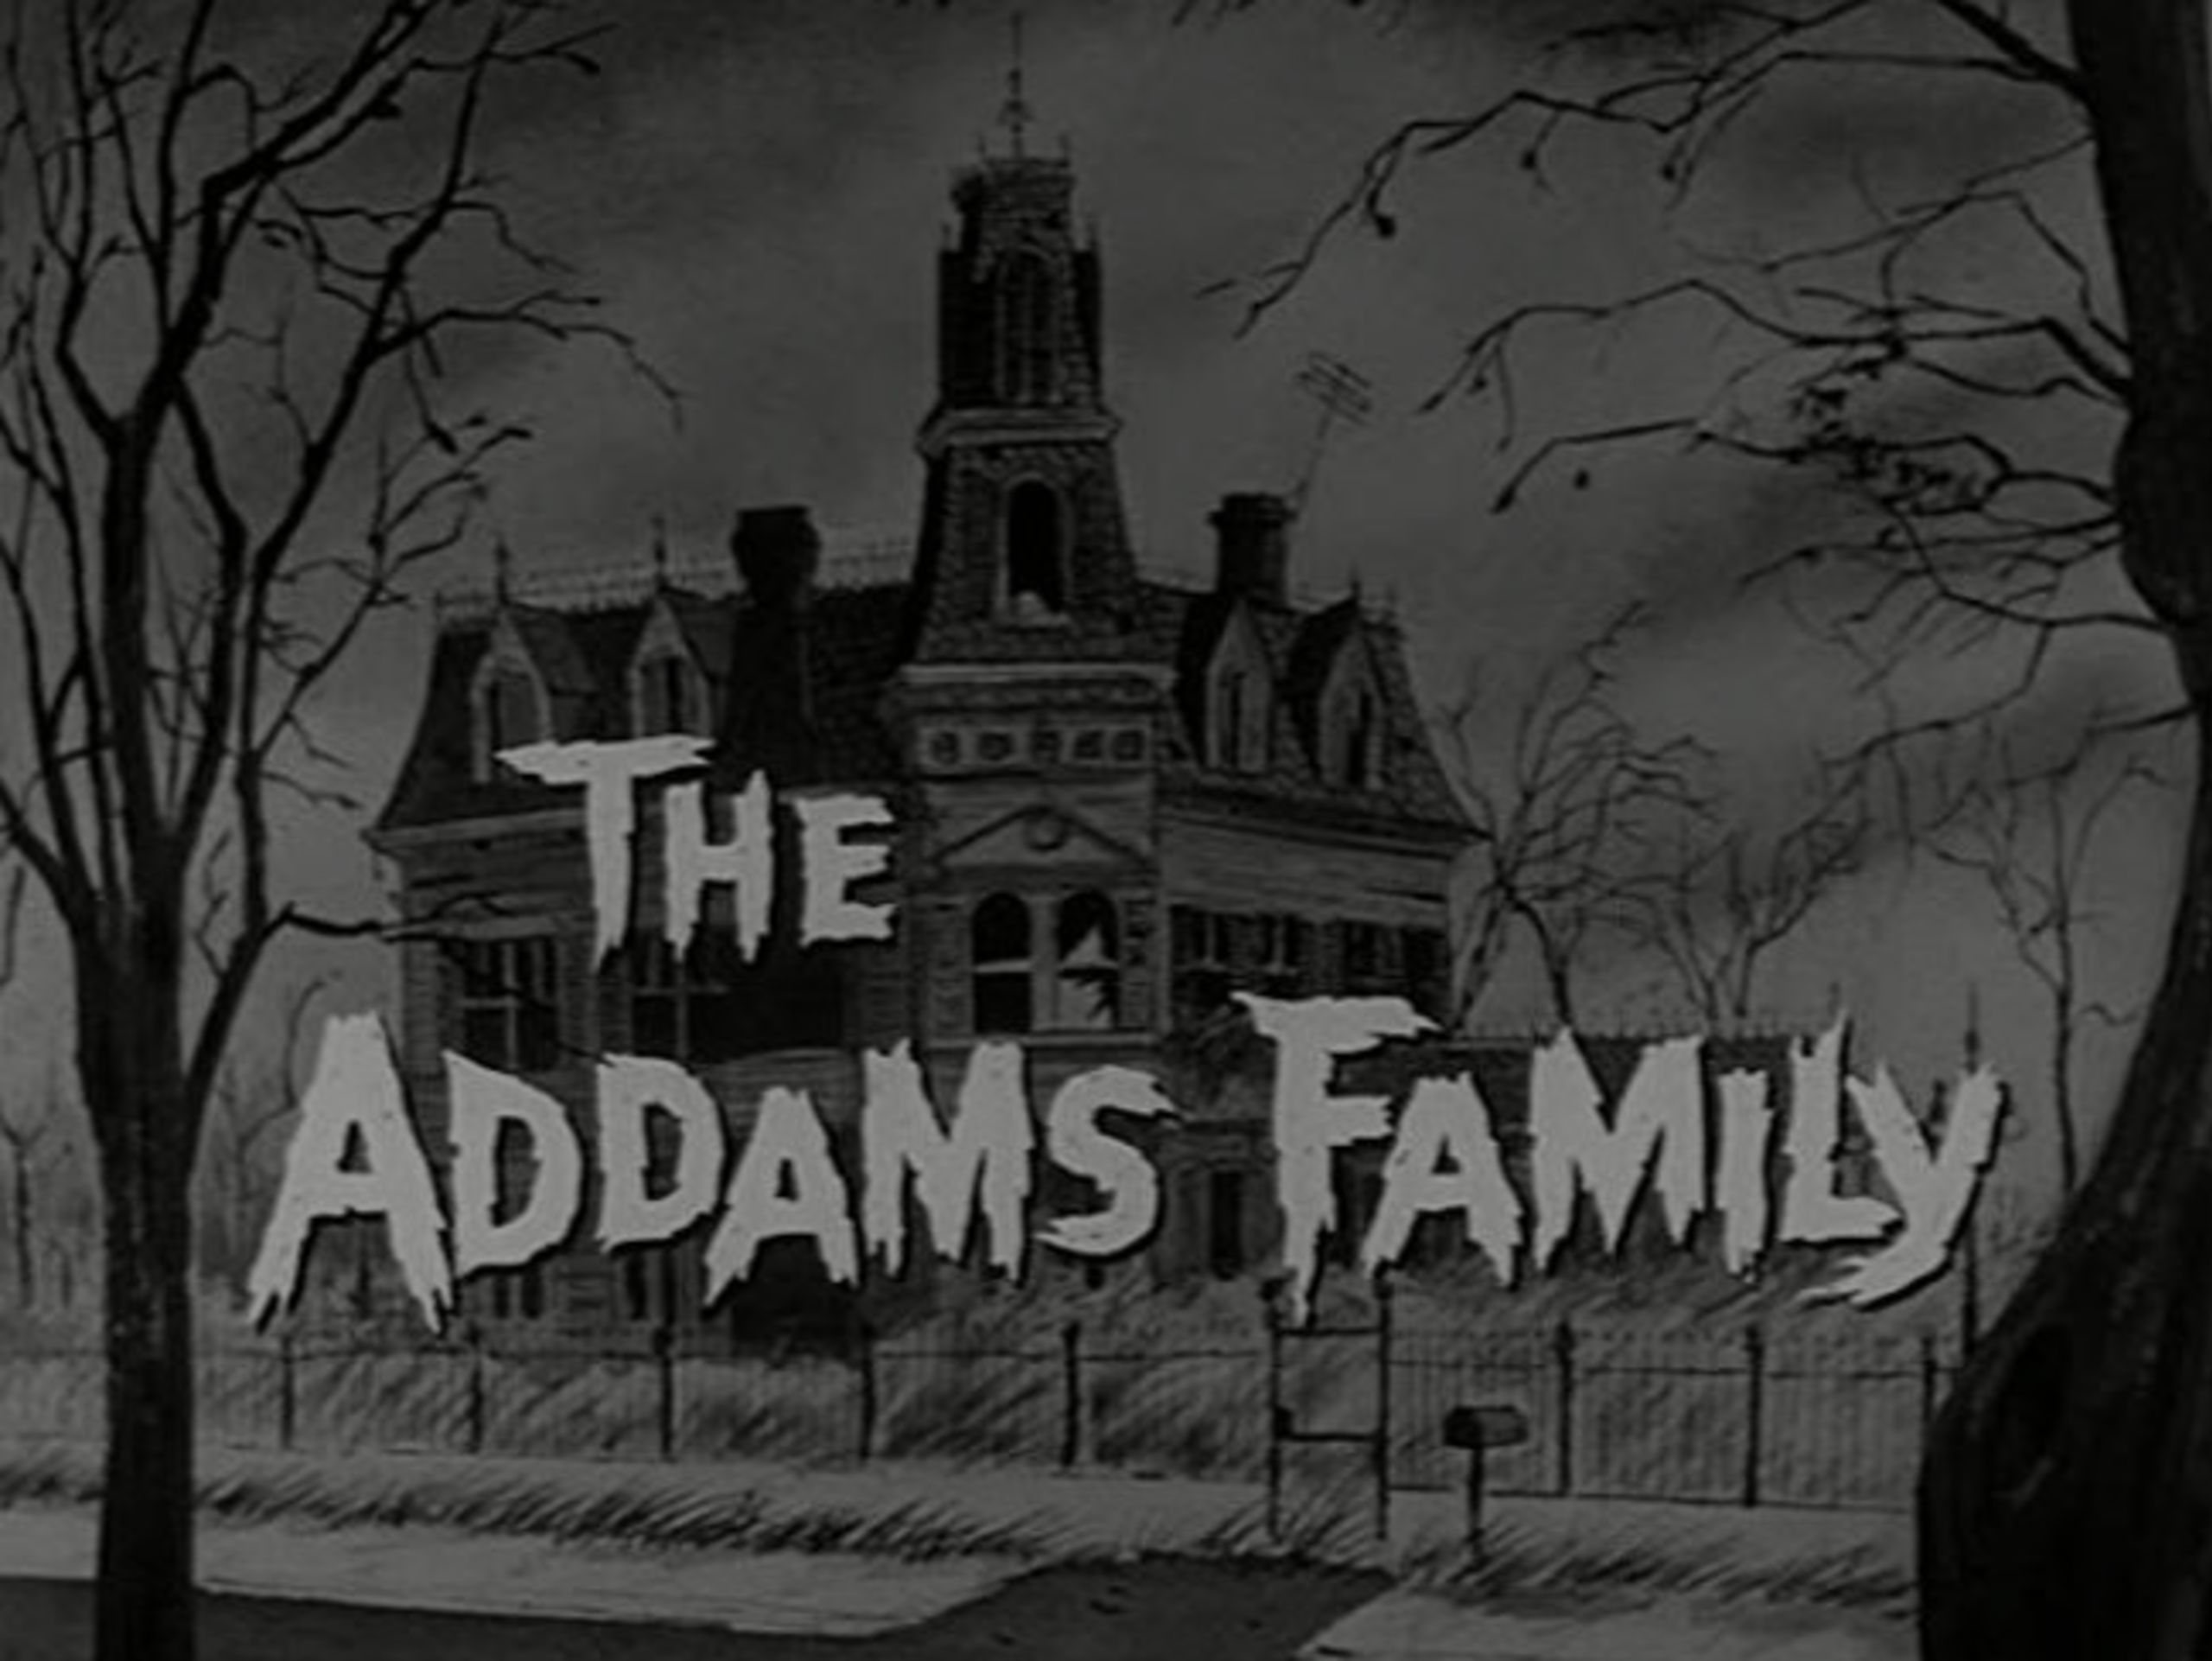 'Addams Family' house being sold for the first time since 1924